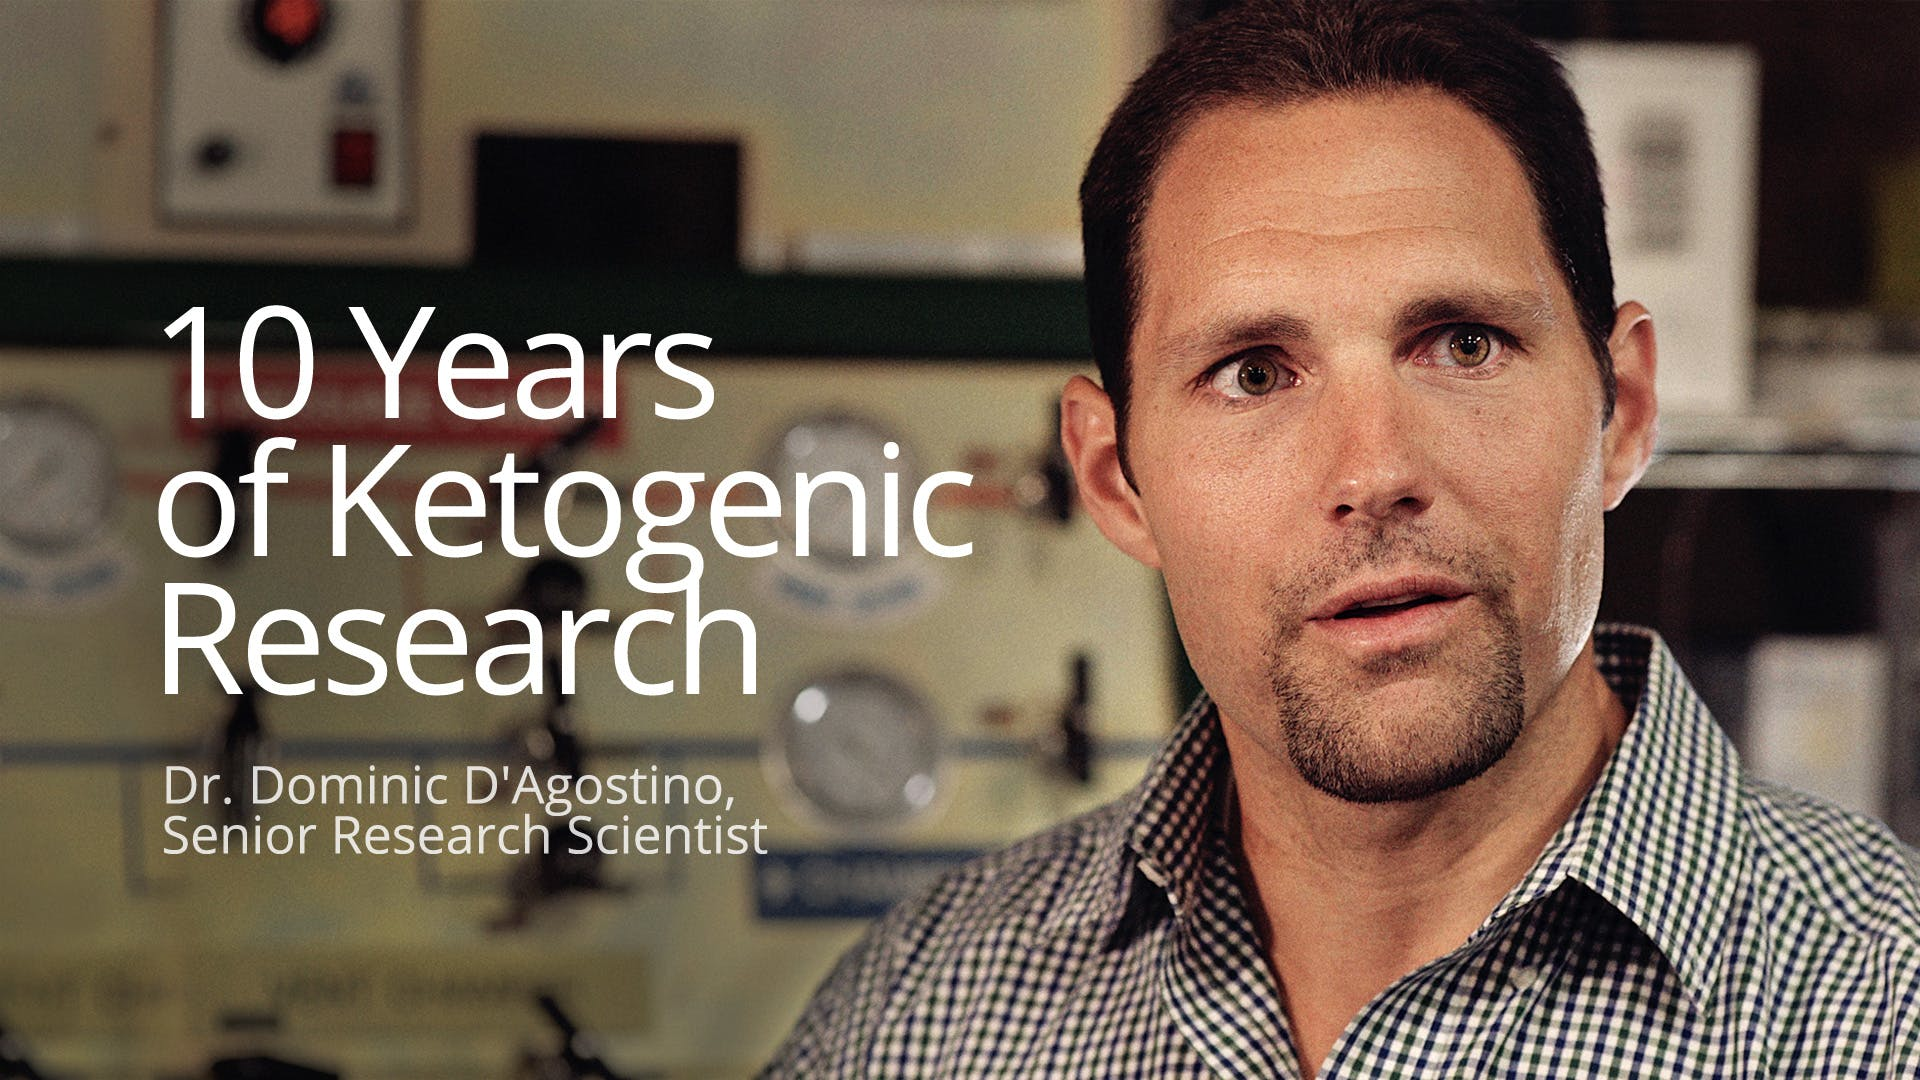 10 years of ketogenic research